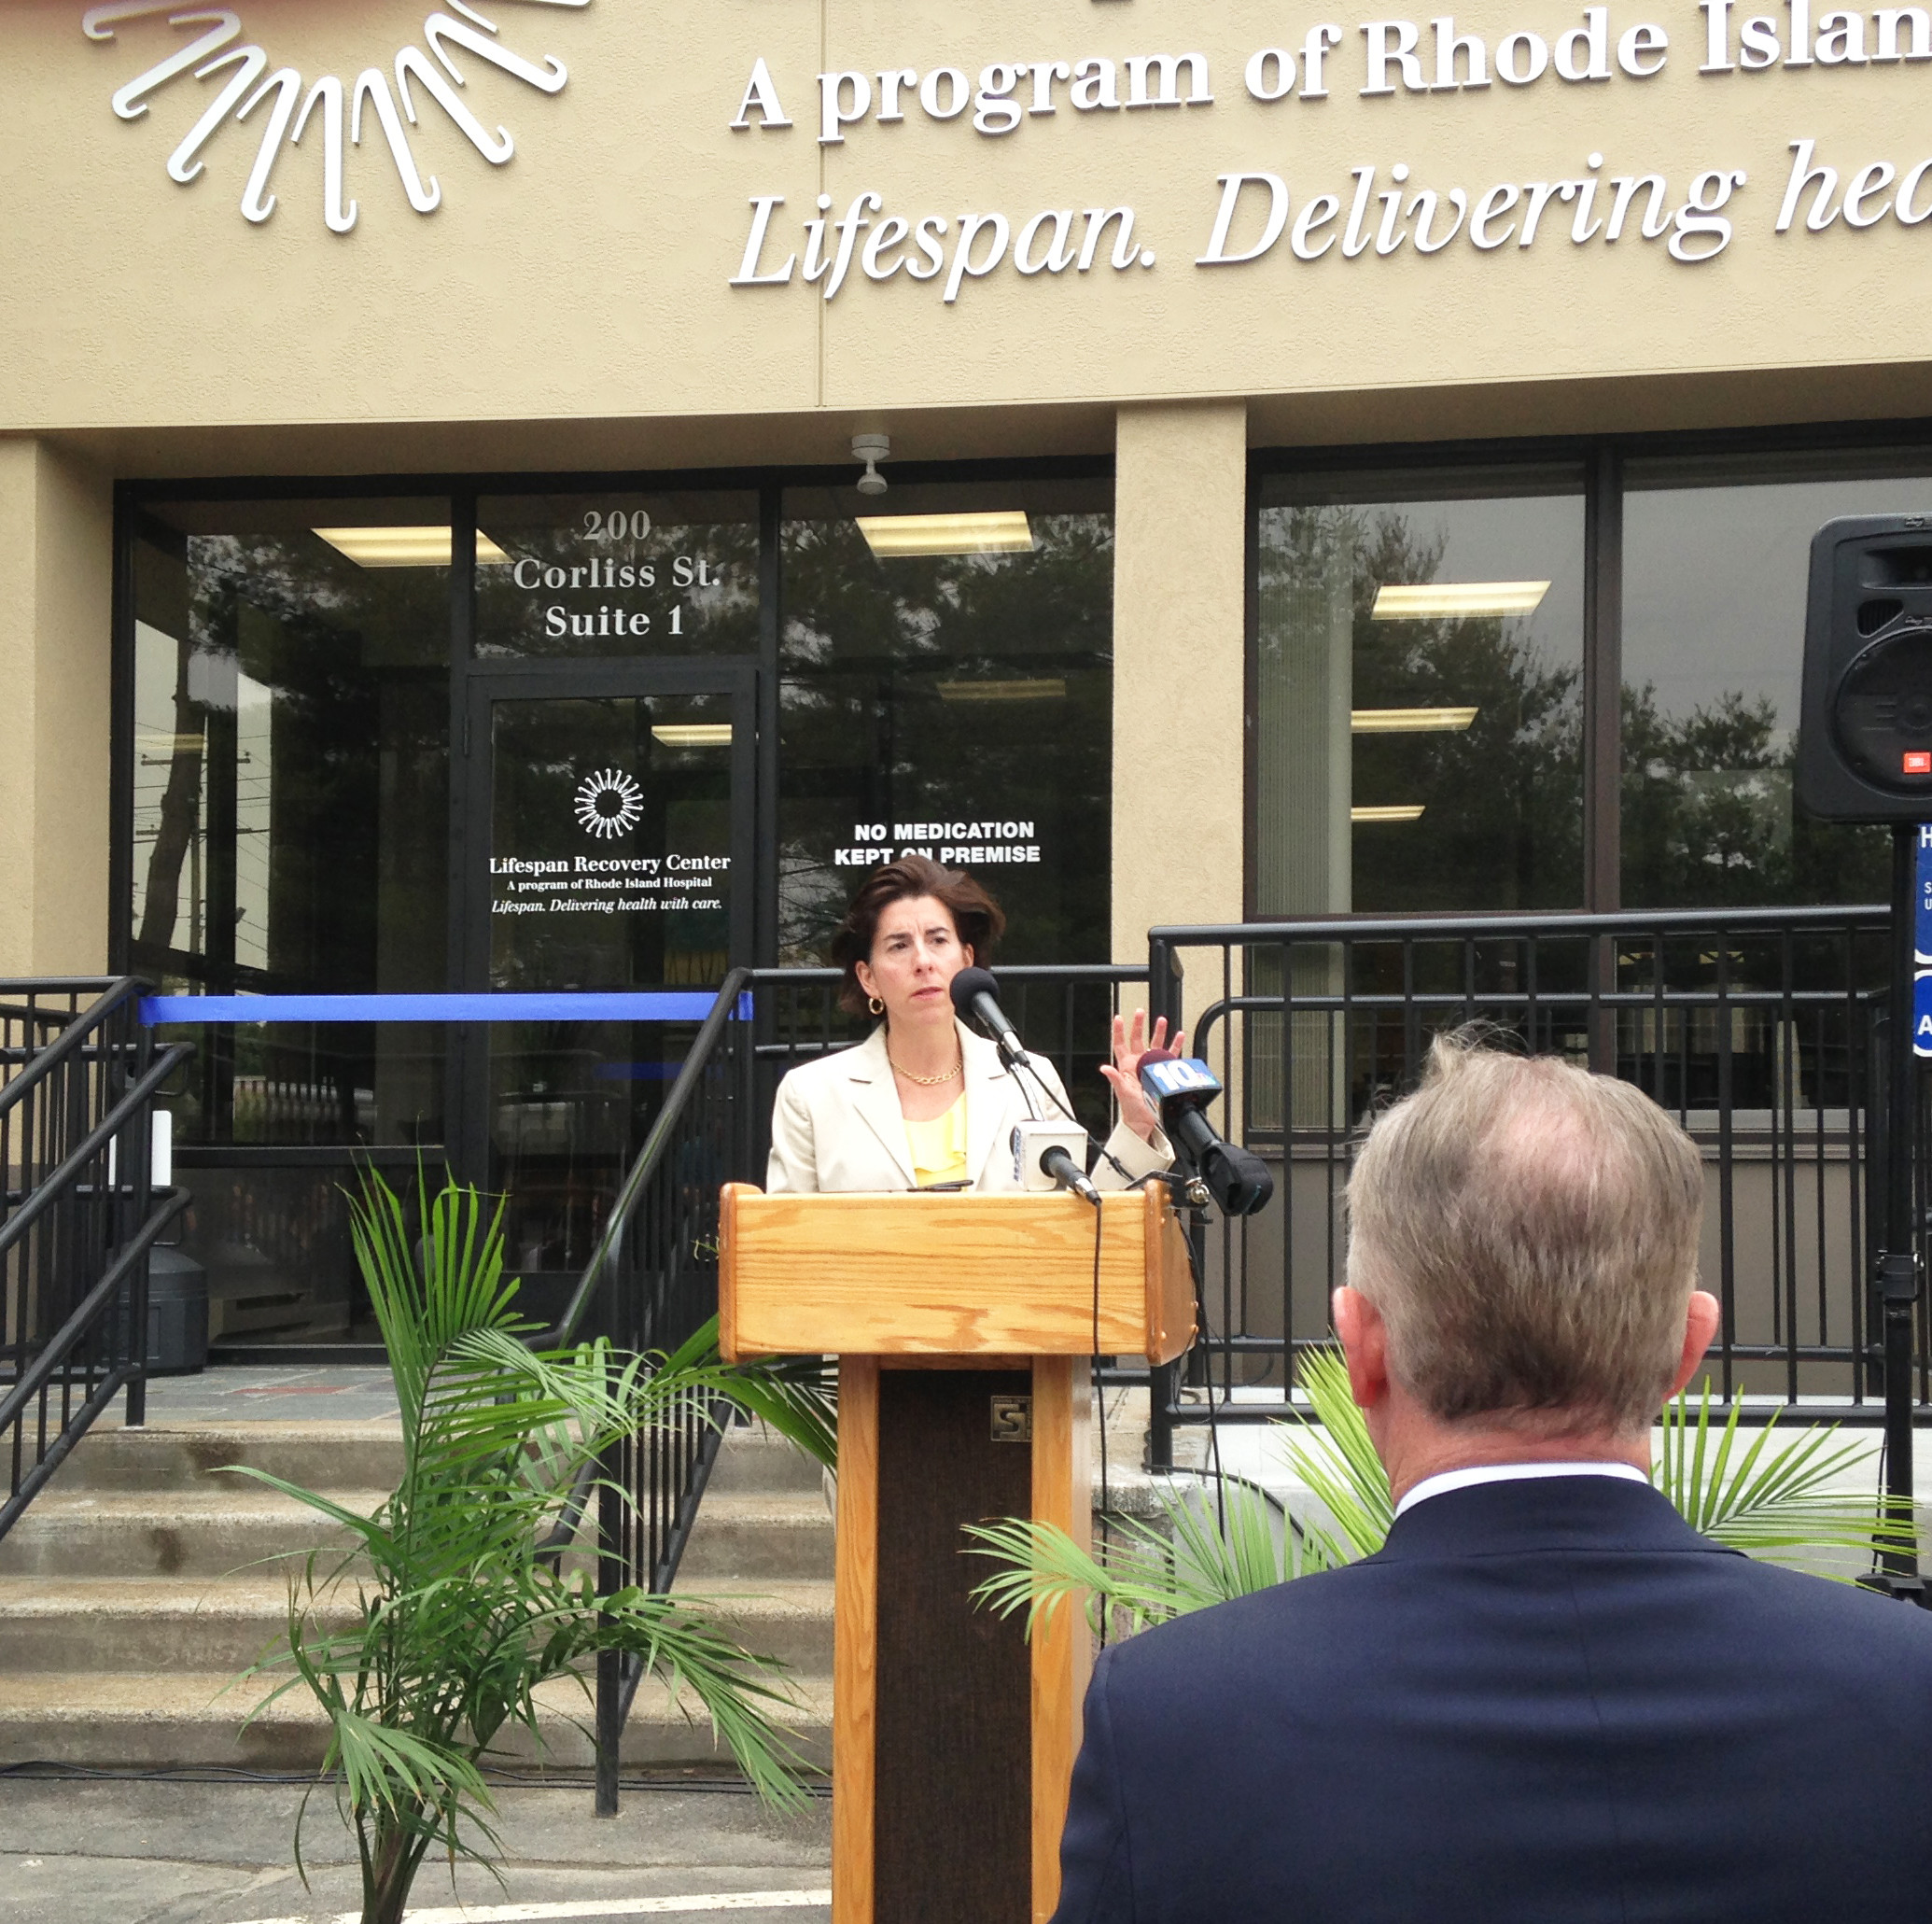 Gov. Gina Raimondo talks at the opening of the new Lifespan Recovery Center on June 19, as Dr. Timothy Babineau, president and CEO of Lifespan, listens attentively.